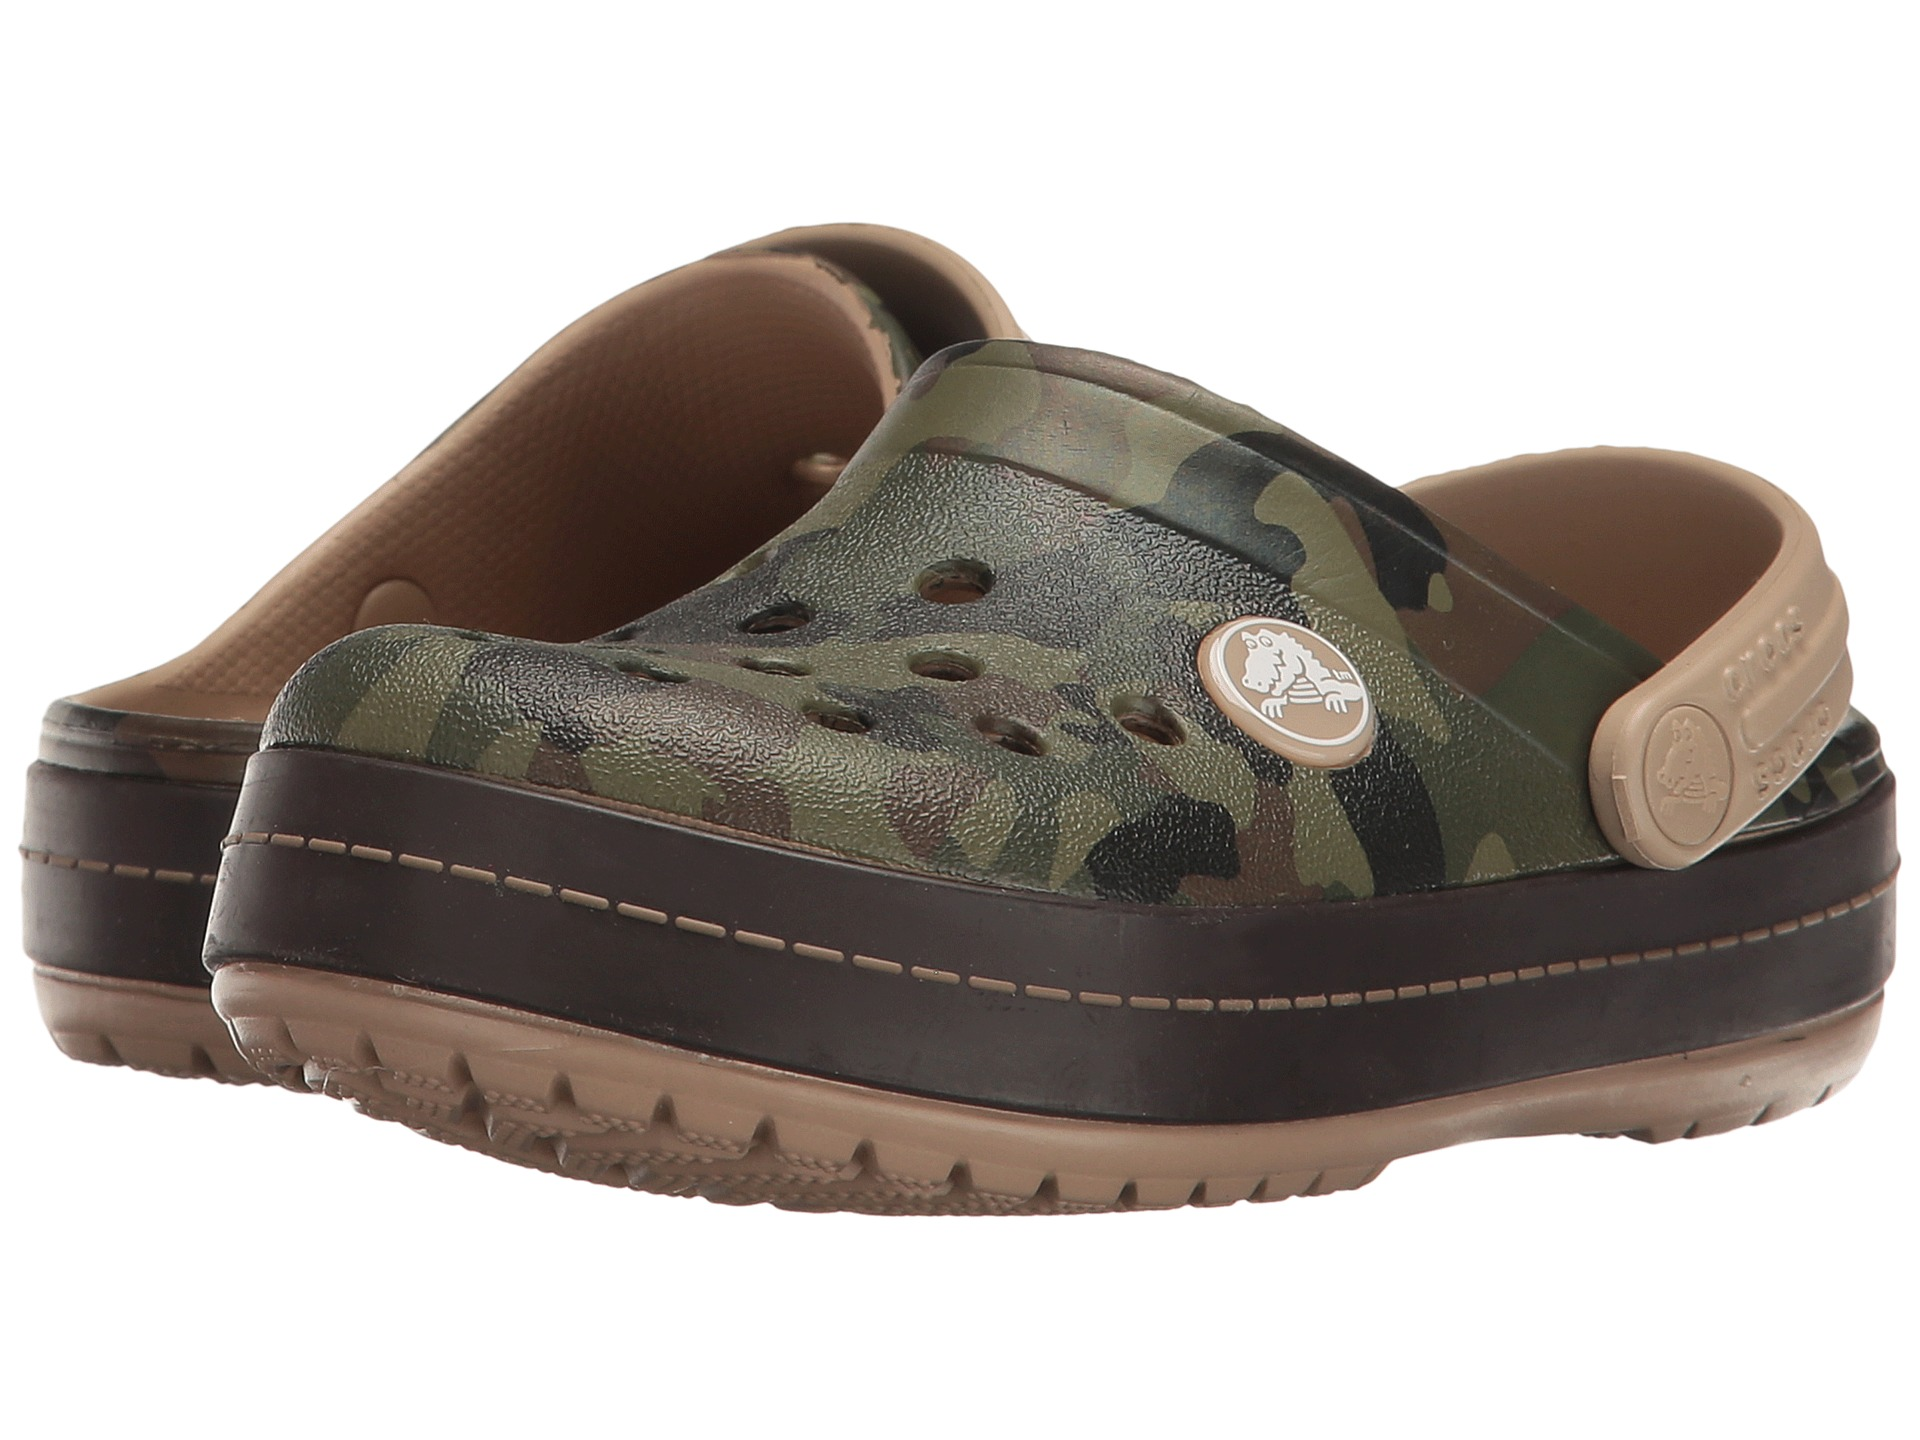 Free shipping & returns and save 5% every day with your Target researchbackgroundcheck.gq: Boots, Sandals, Athletic Shoes, Dress Shoes, Heels, Slippers, Kids Shoes.